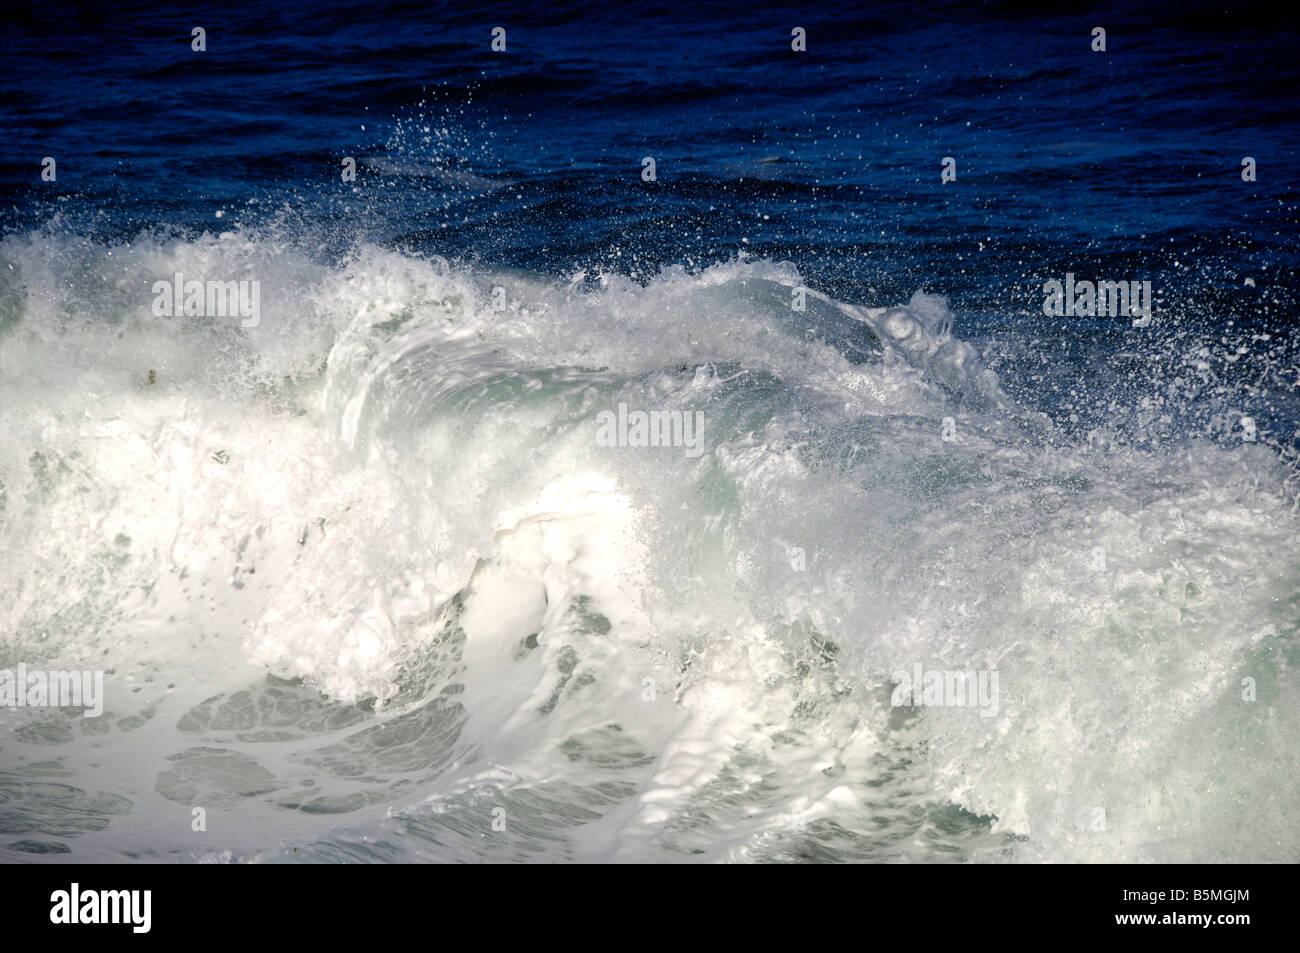 sea waves rough water wind detail Stock Photo